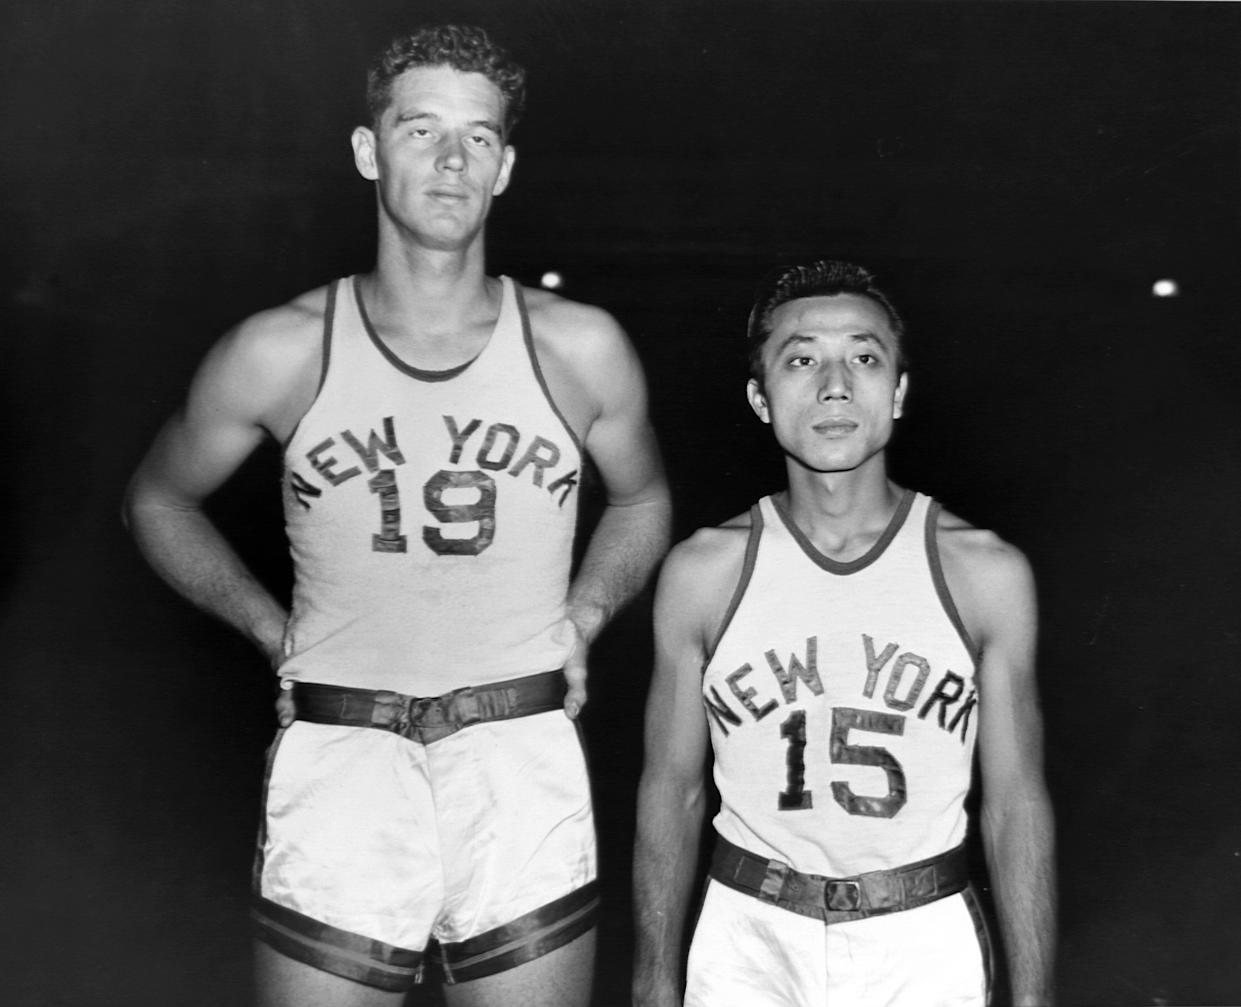 Waturu Misaka, right, seen with Lee Knorek as a member of the New York Knicks. (George Torrie/NY Daily News via Getty Images)